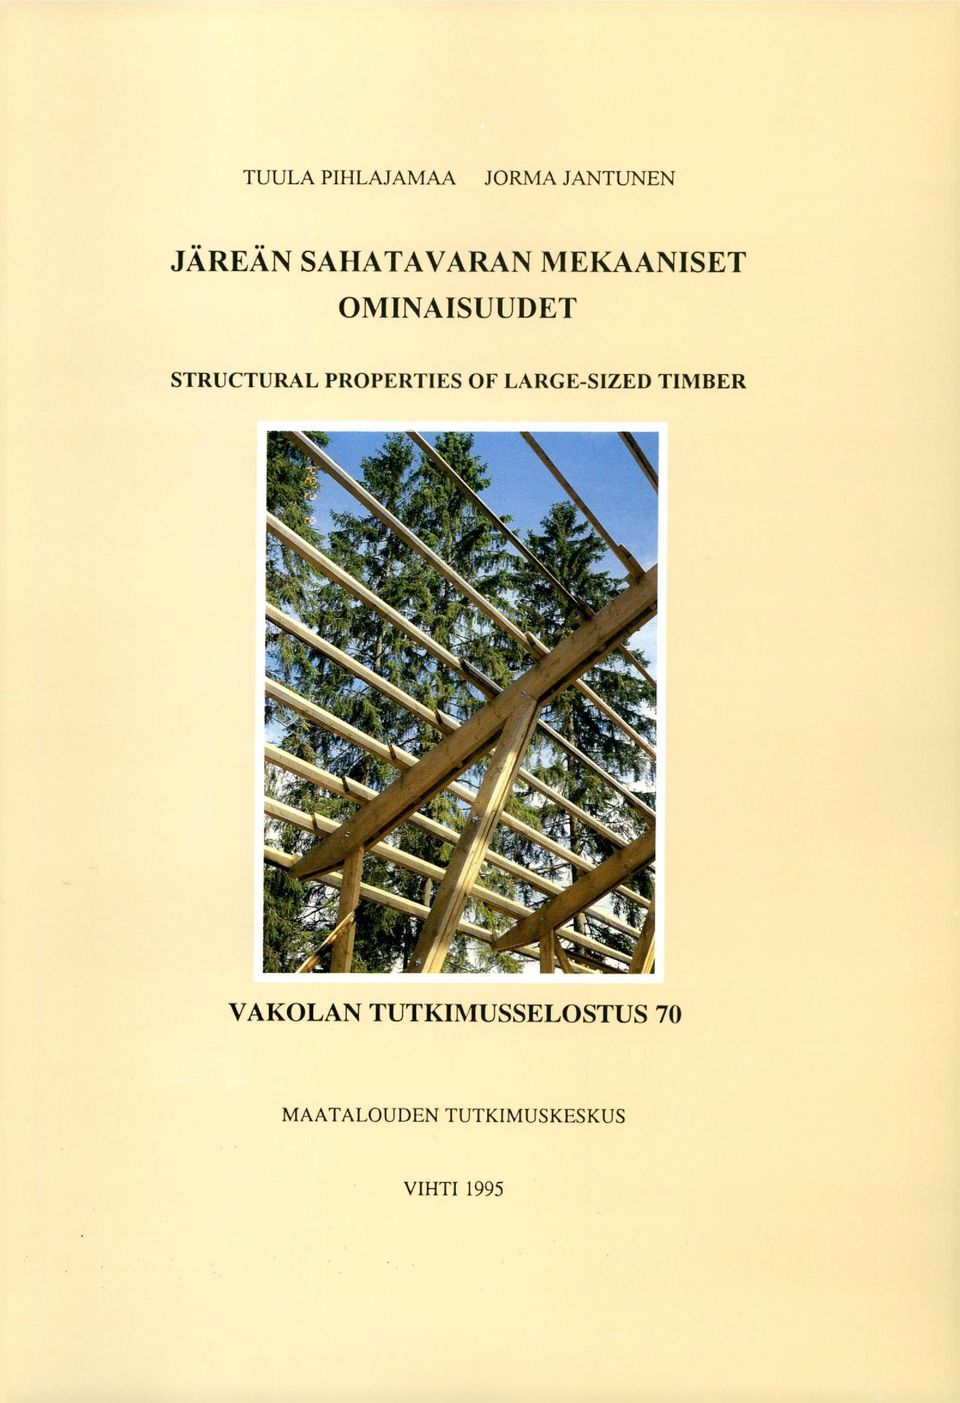 STRUCTURAL PROPERTIES OF LARGE-SIZED TIMBER